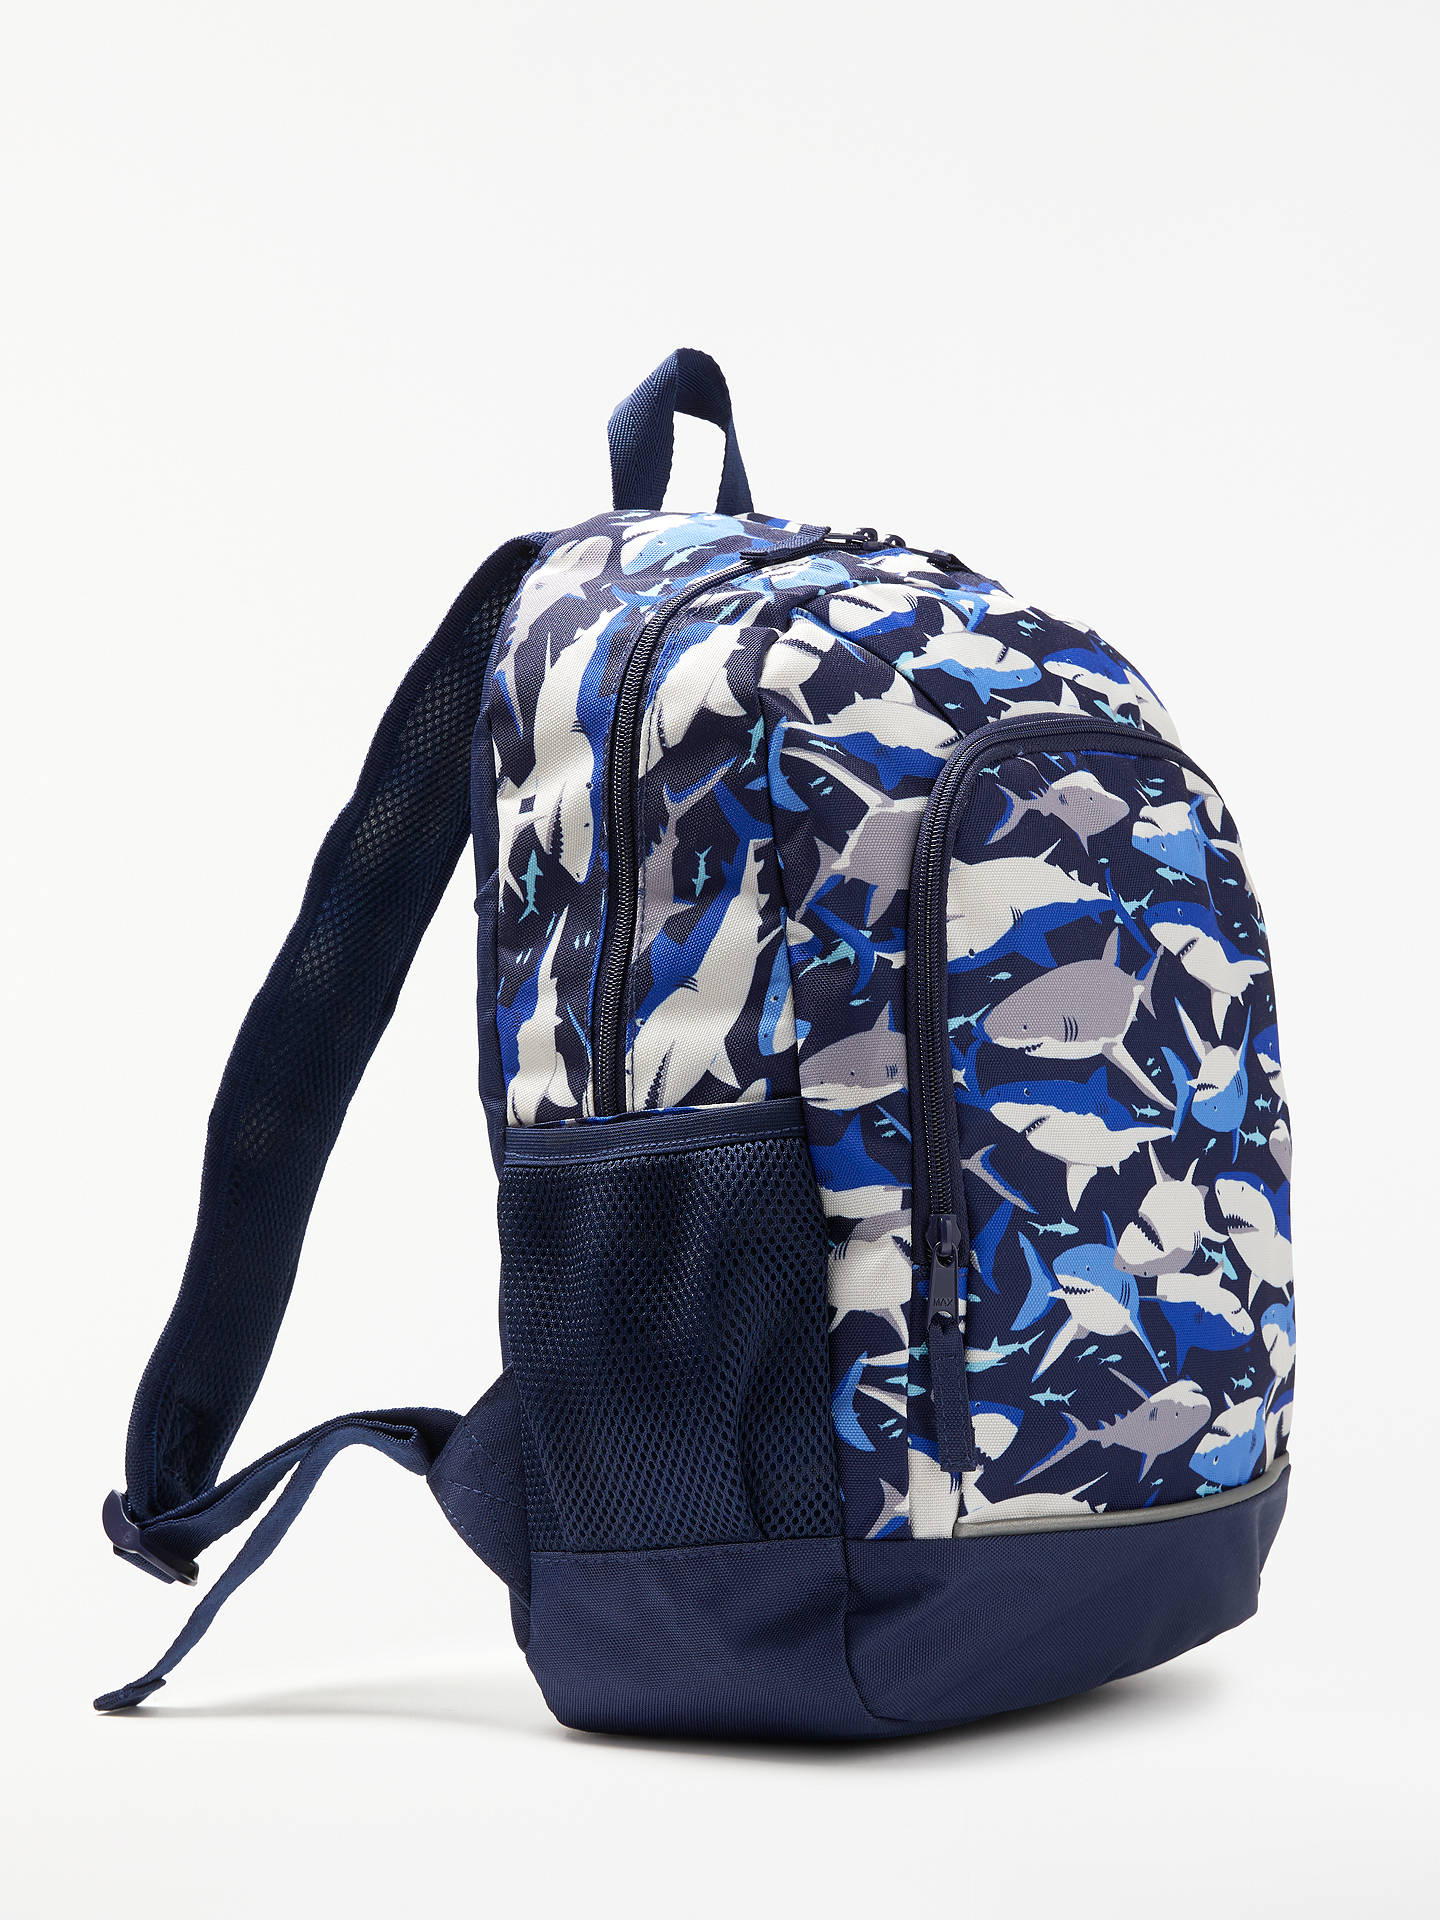 BuyJohn Lewis & Partners Children's Shark Print Backpack, Navy/Multi Online at johnlewis.com